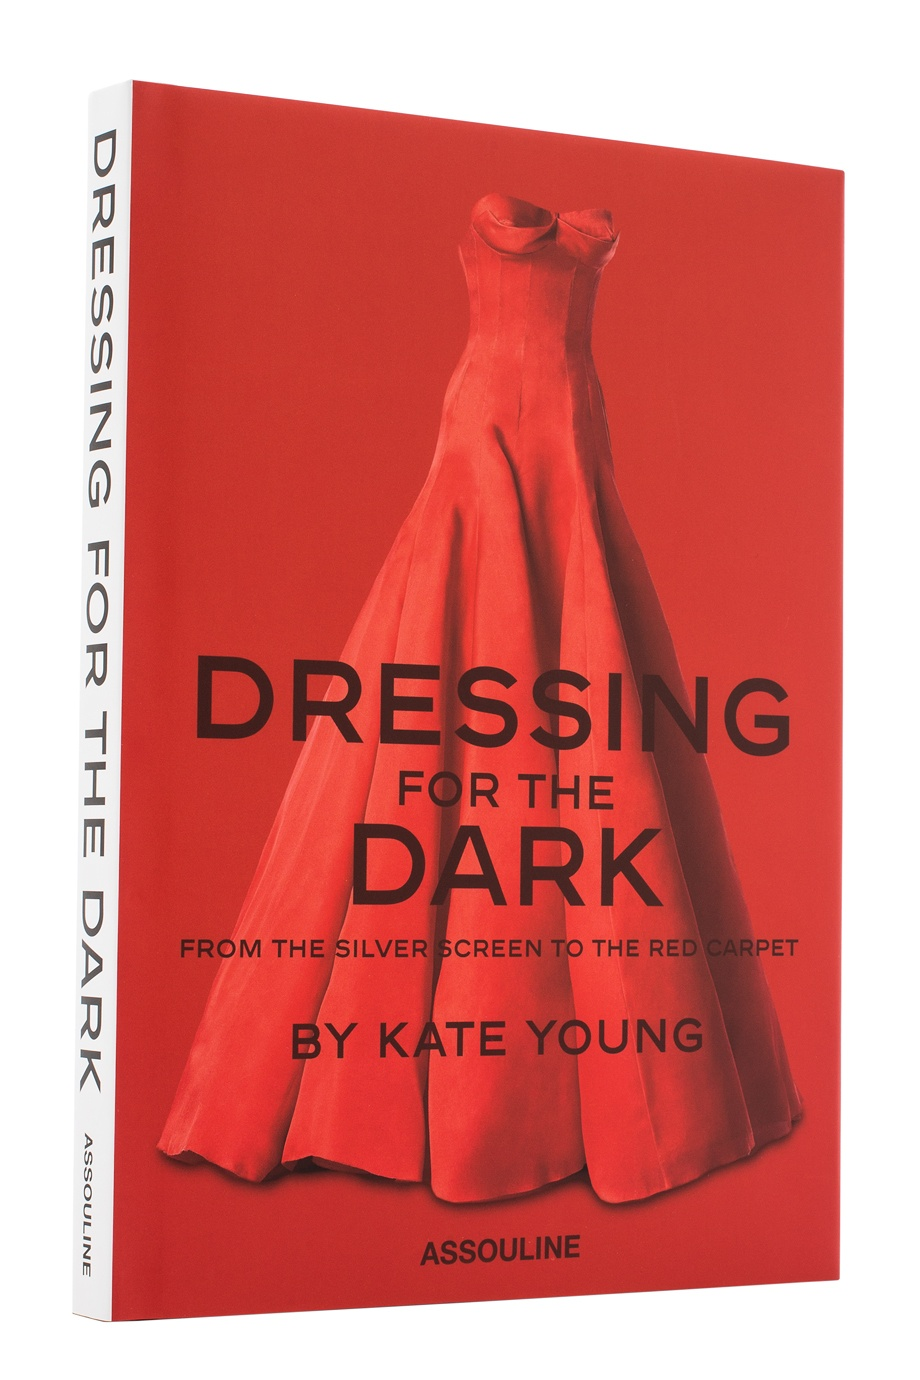 Dressing for the dark Assouline (фото)